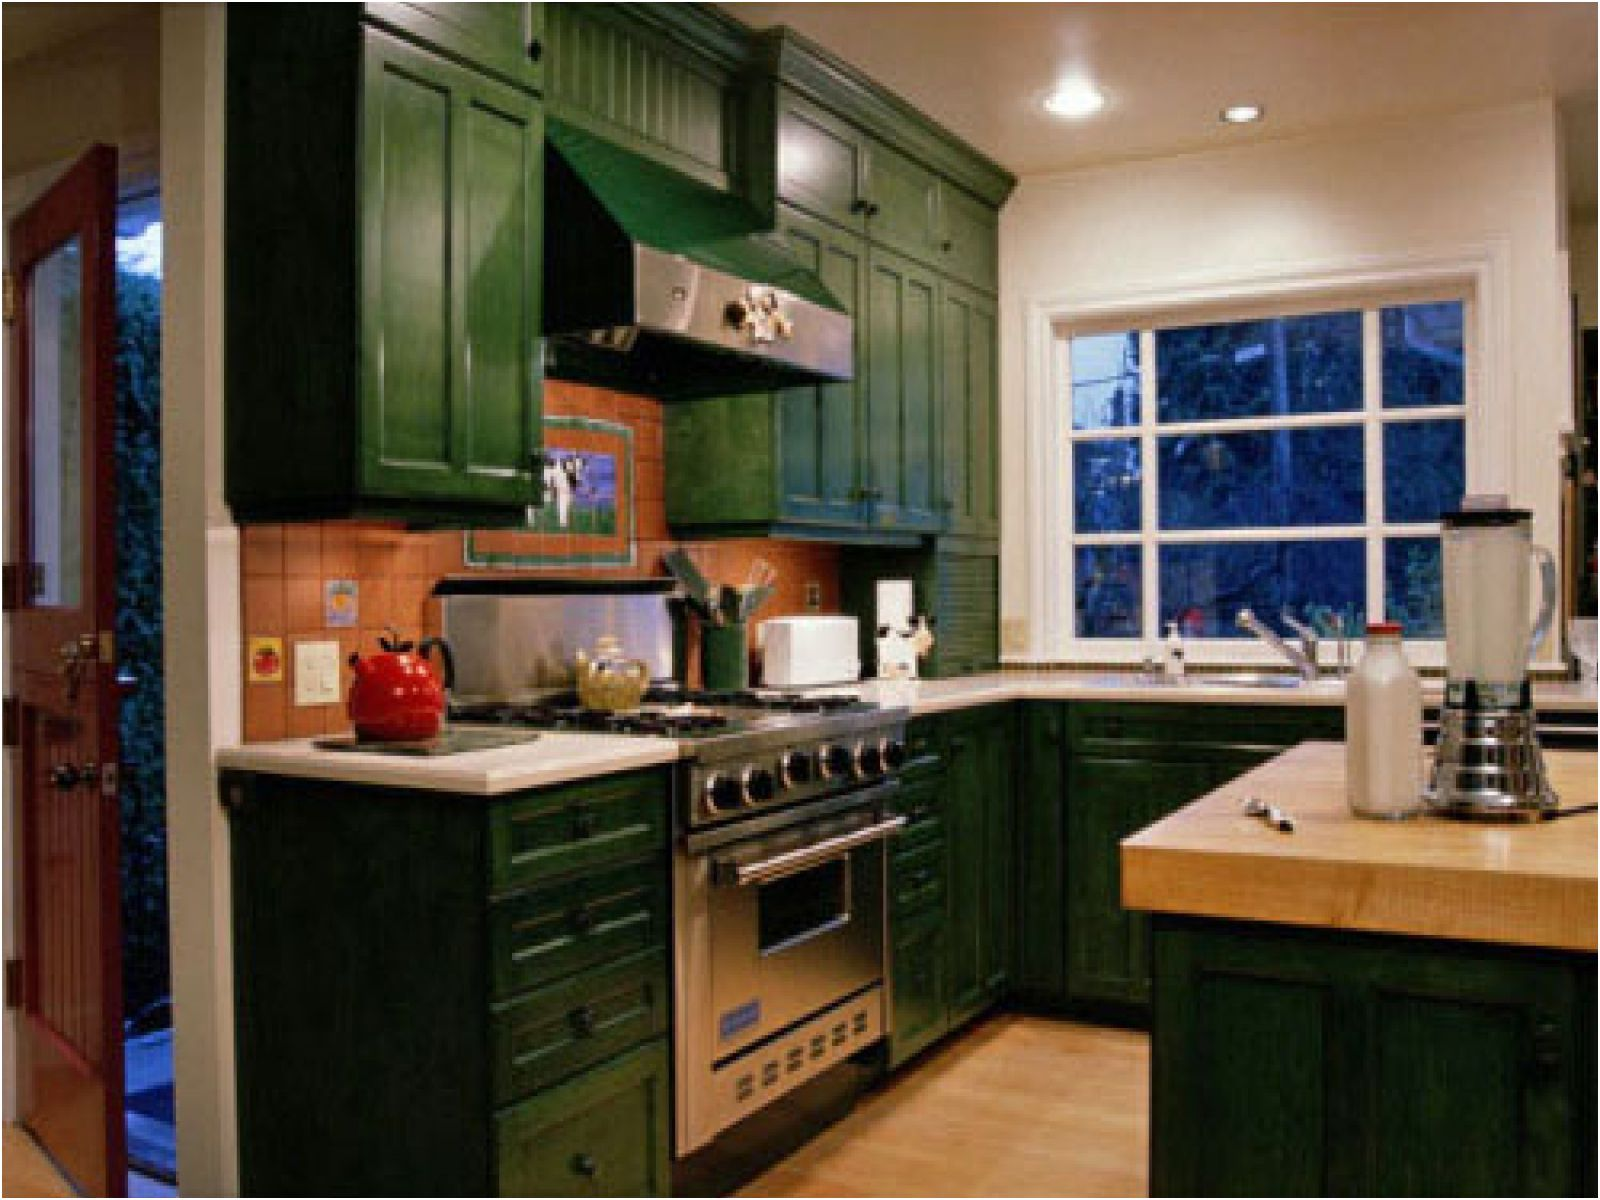 10 Terrific Kitchen Floor Ideas With Green Cabinets Photograph Cheap Kitchen Remodel Kitchen Remodel Cost Simple Kitchen Remodel